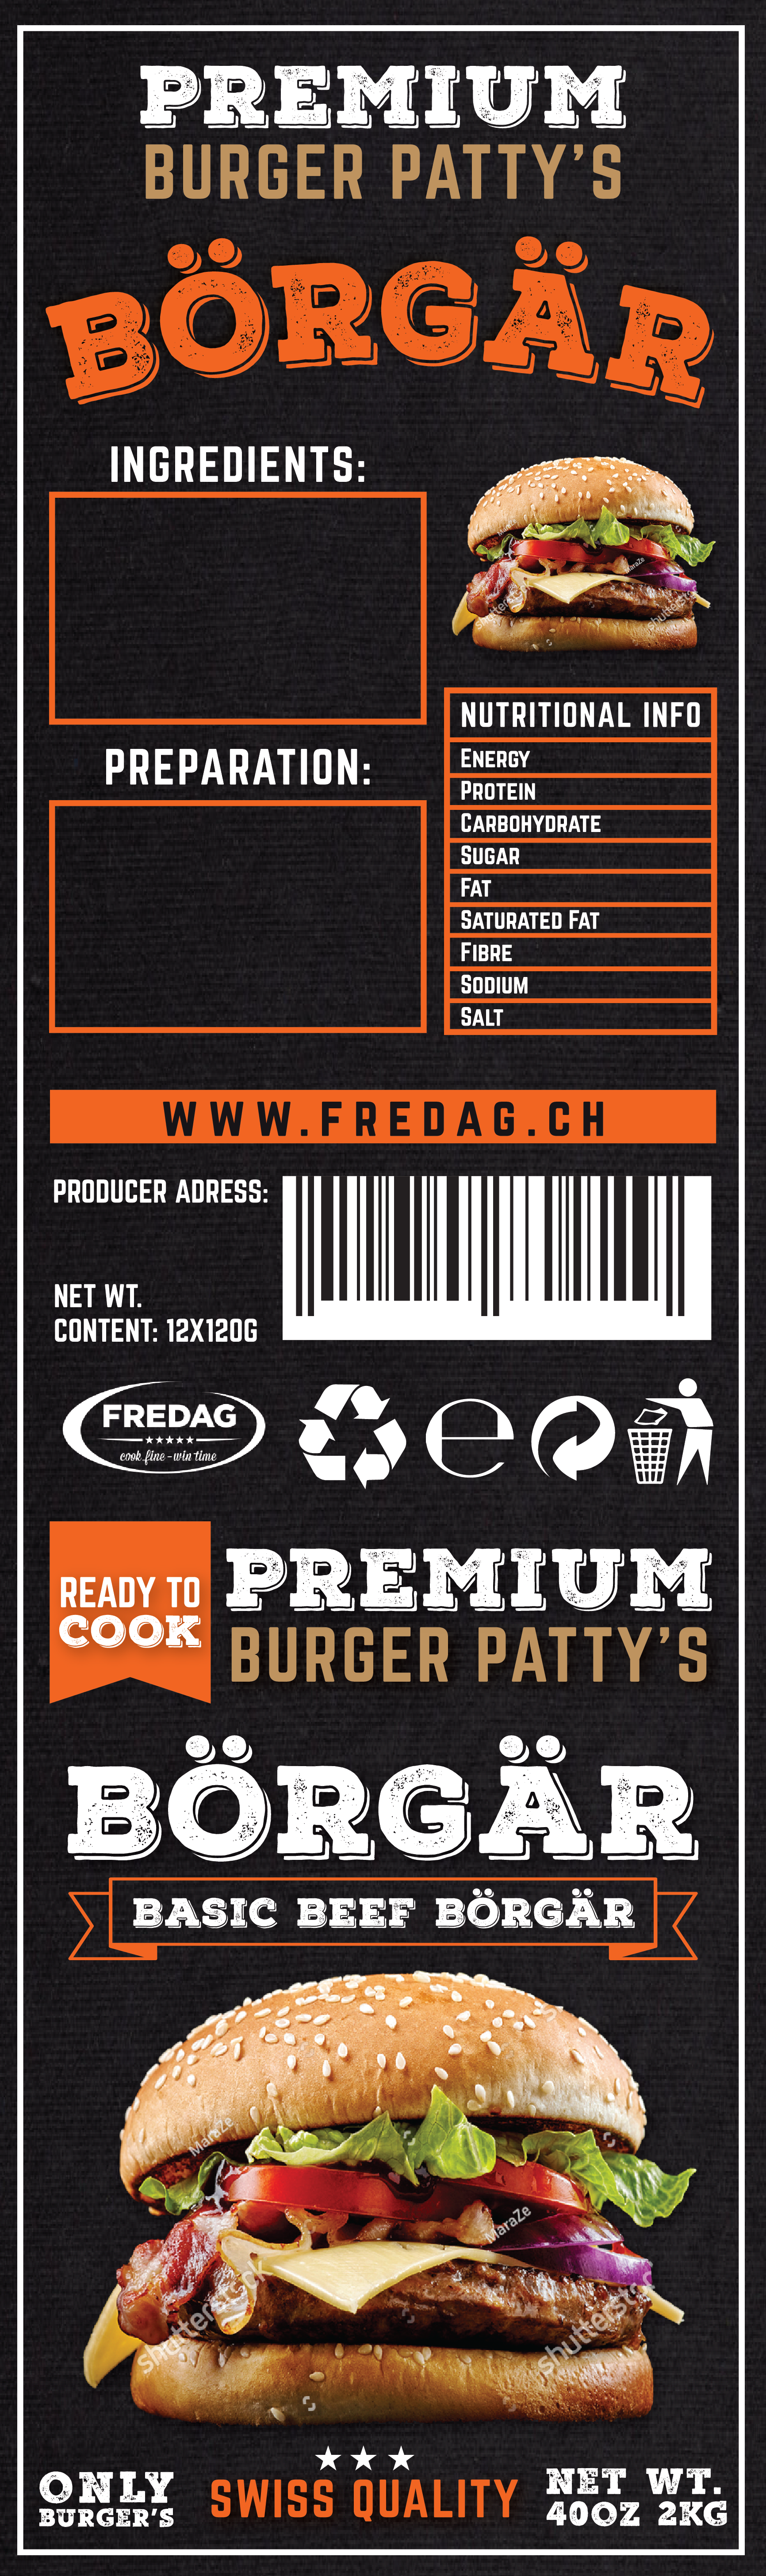 NEW Burger Patty Packaging - Food Service